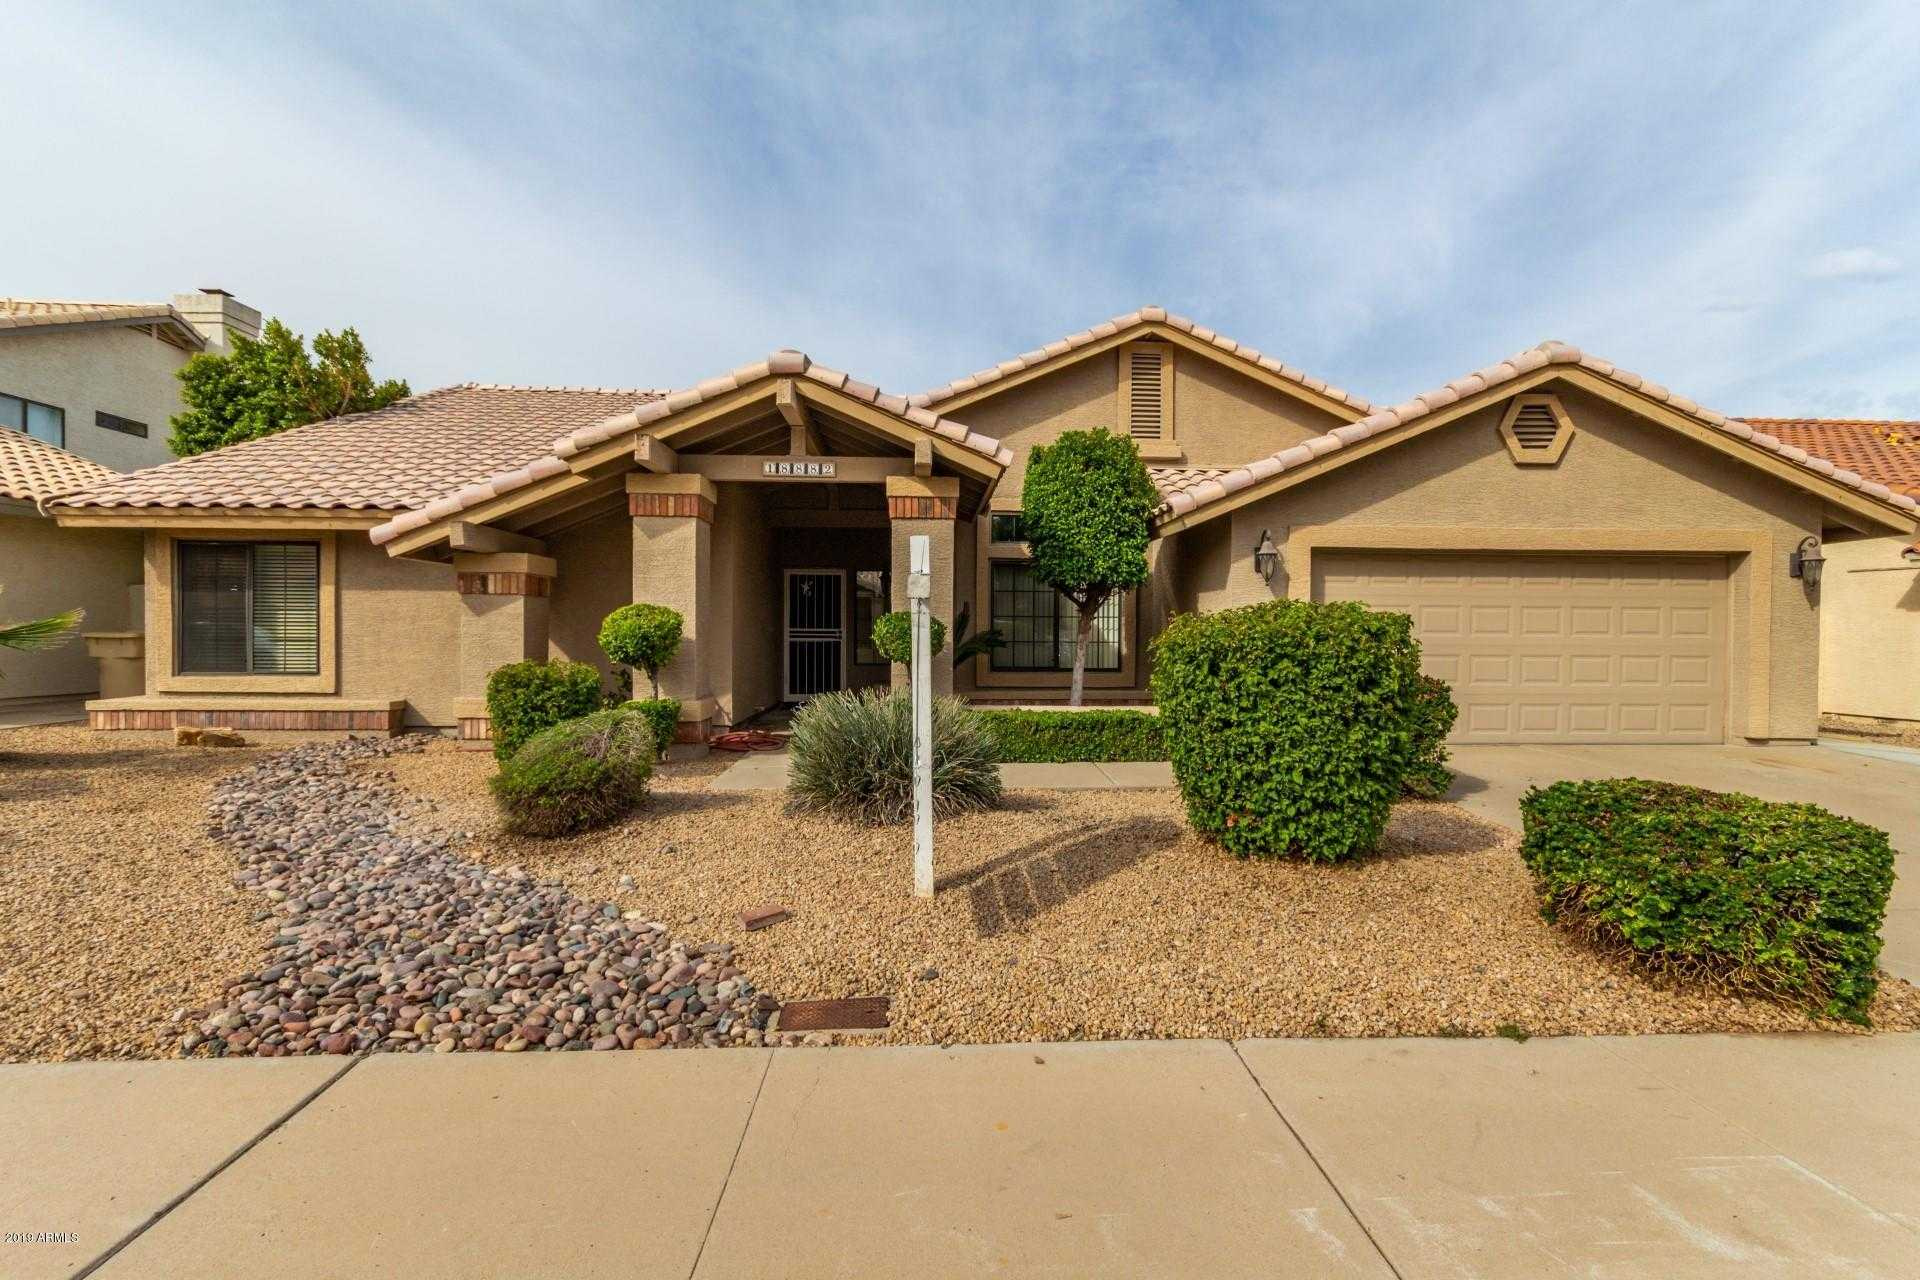 $350,000 - 3Br/2Ba - Home for Sale in Arrowhead Ranch 4 Lt 1-132 Tr A B, Glendale